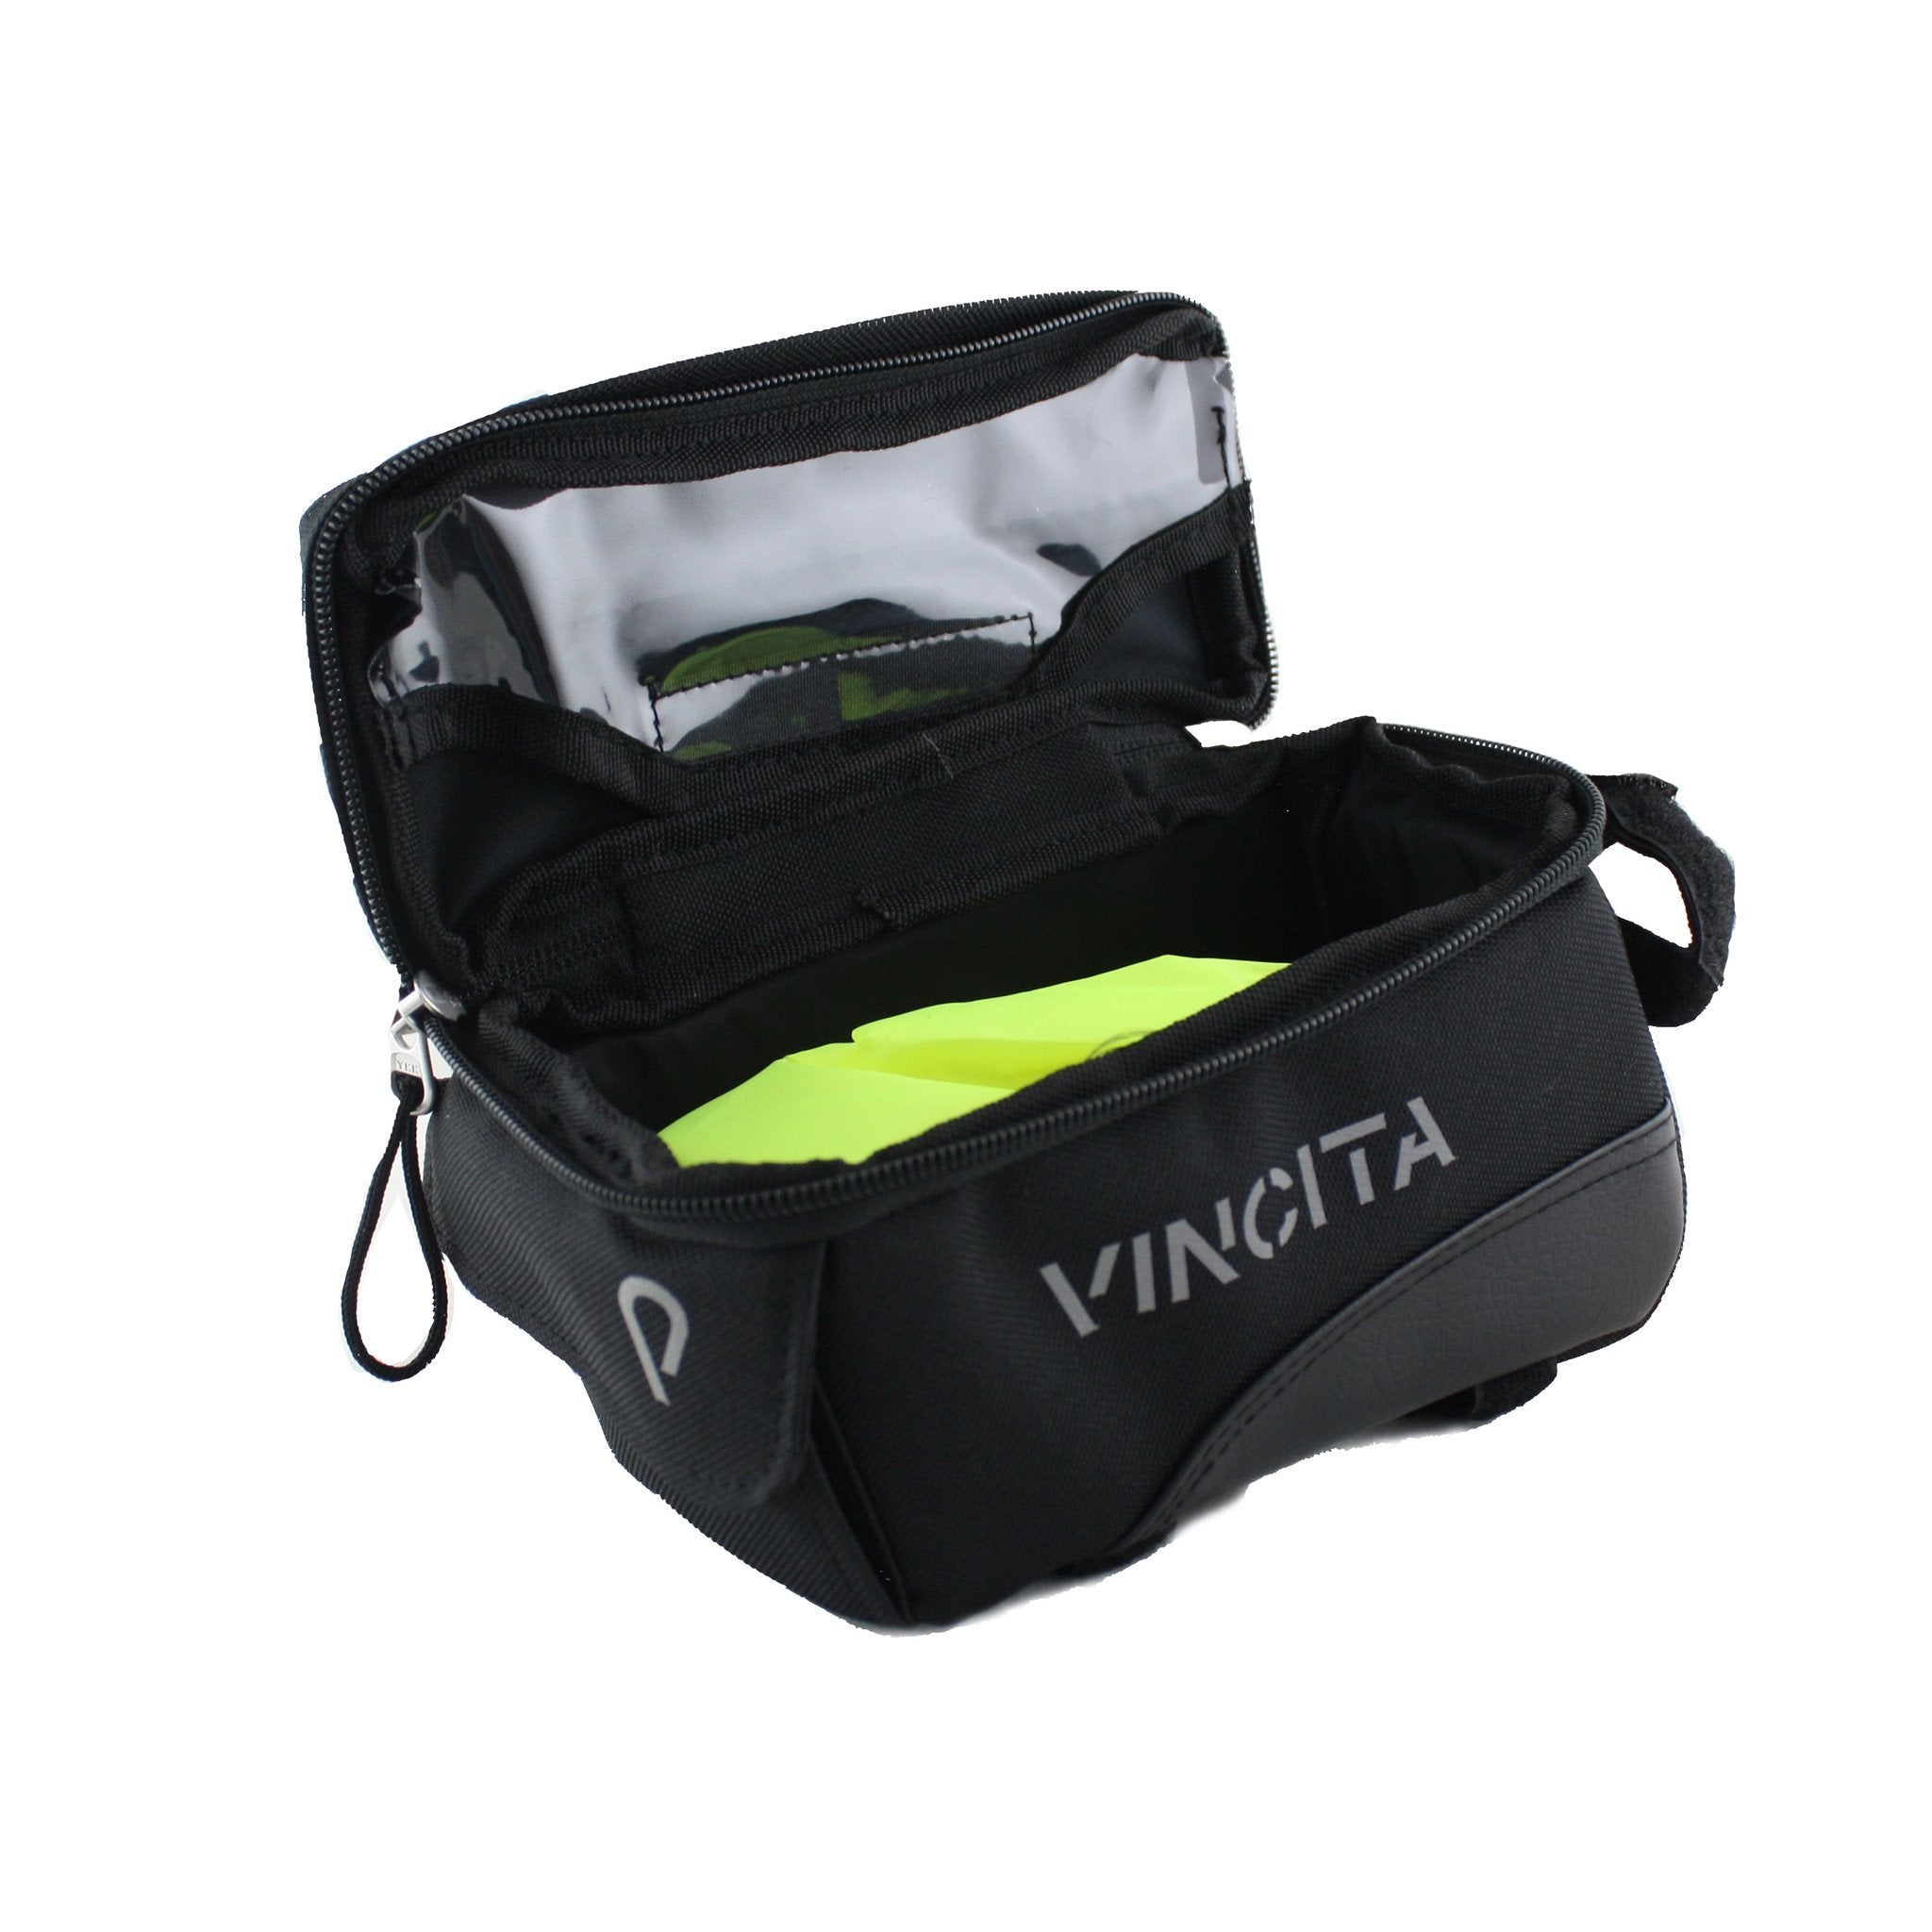 Vincita Co., Ltd. bicycle bag B026D Top Tube Bag with Phone Pocket